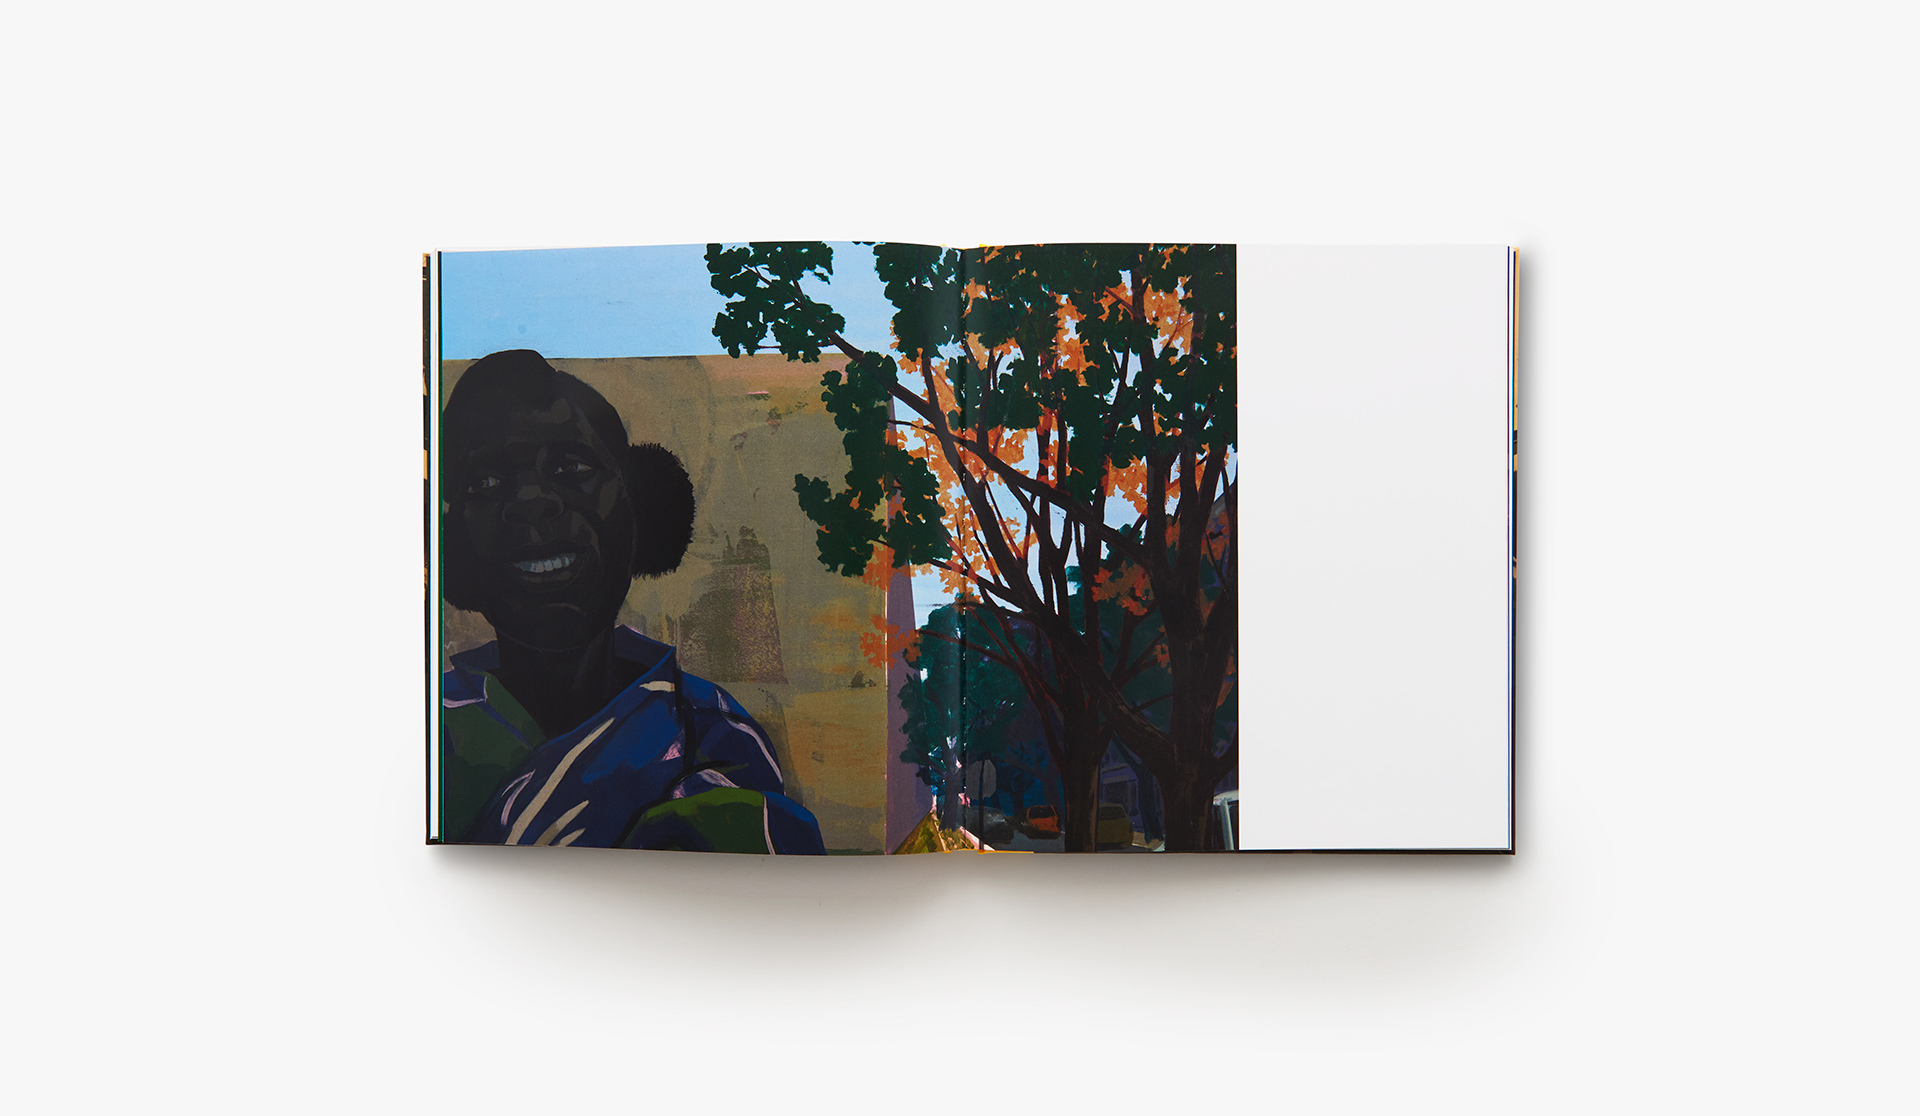 A photo of the book Kerry James Marshall: History of Painting, 2019.